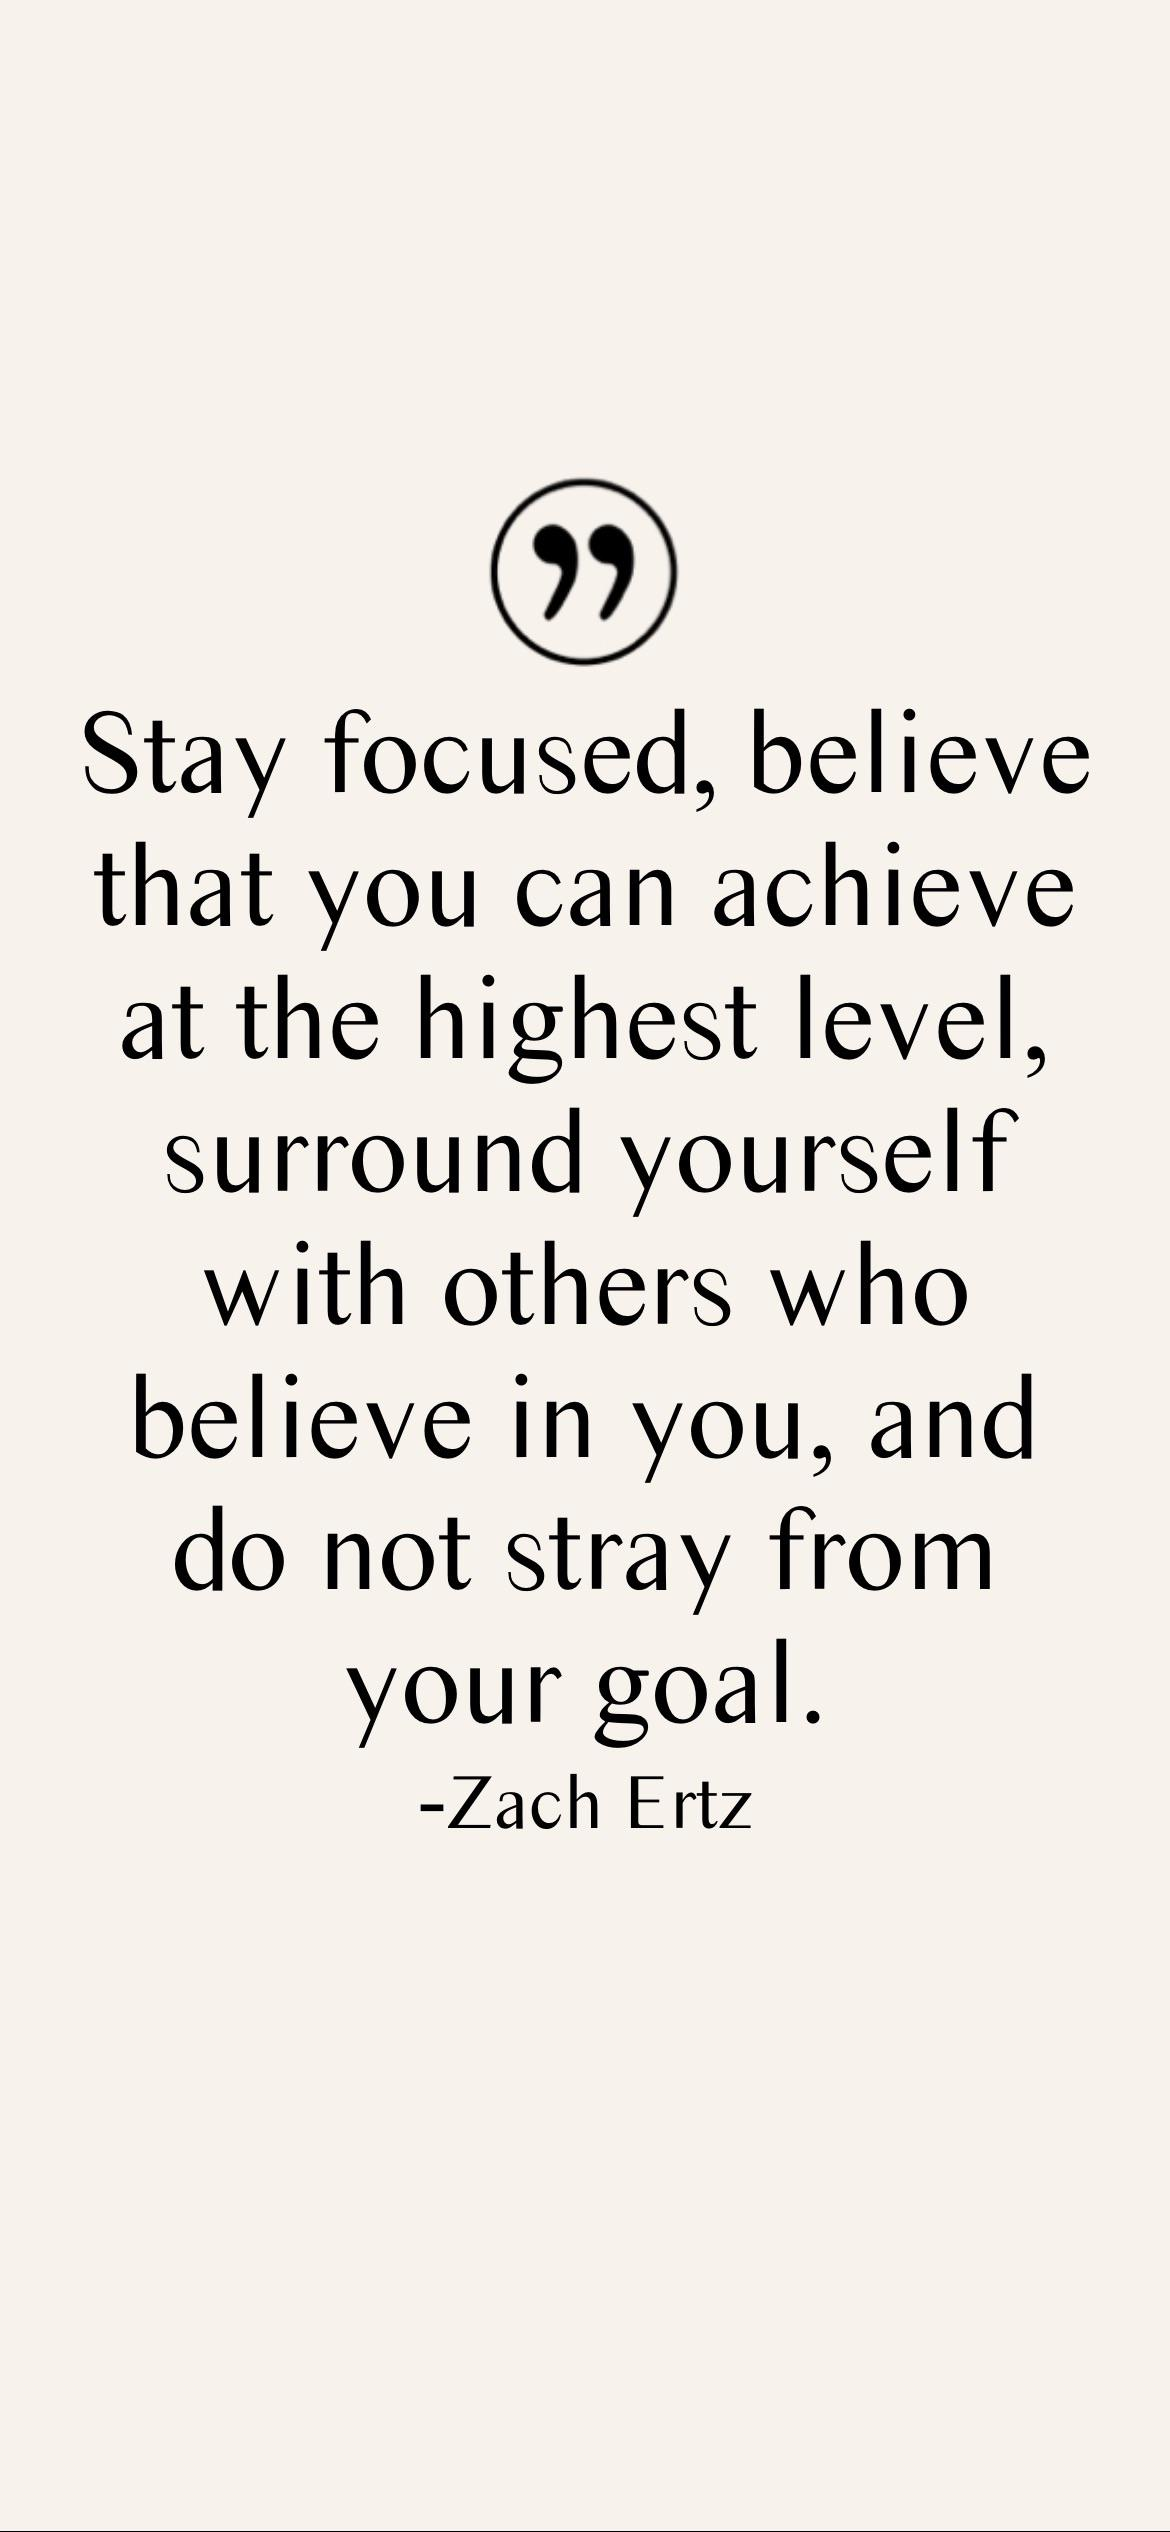 Stay focused, believe that you can achieve at the highest level, surround yourself with others who believe in you, and do not stray from your goal. -Zach Ertz [2532 x 1170p]